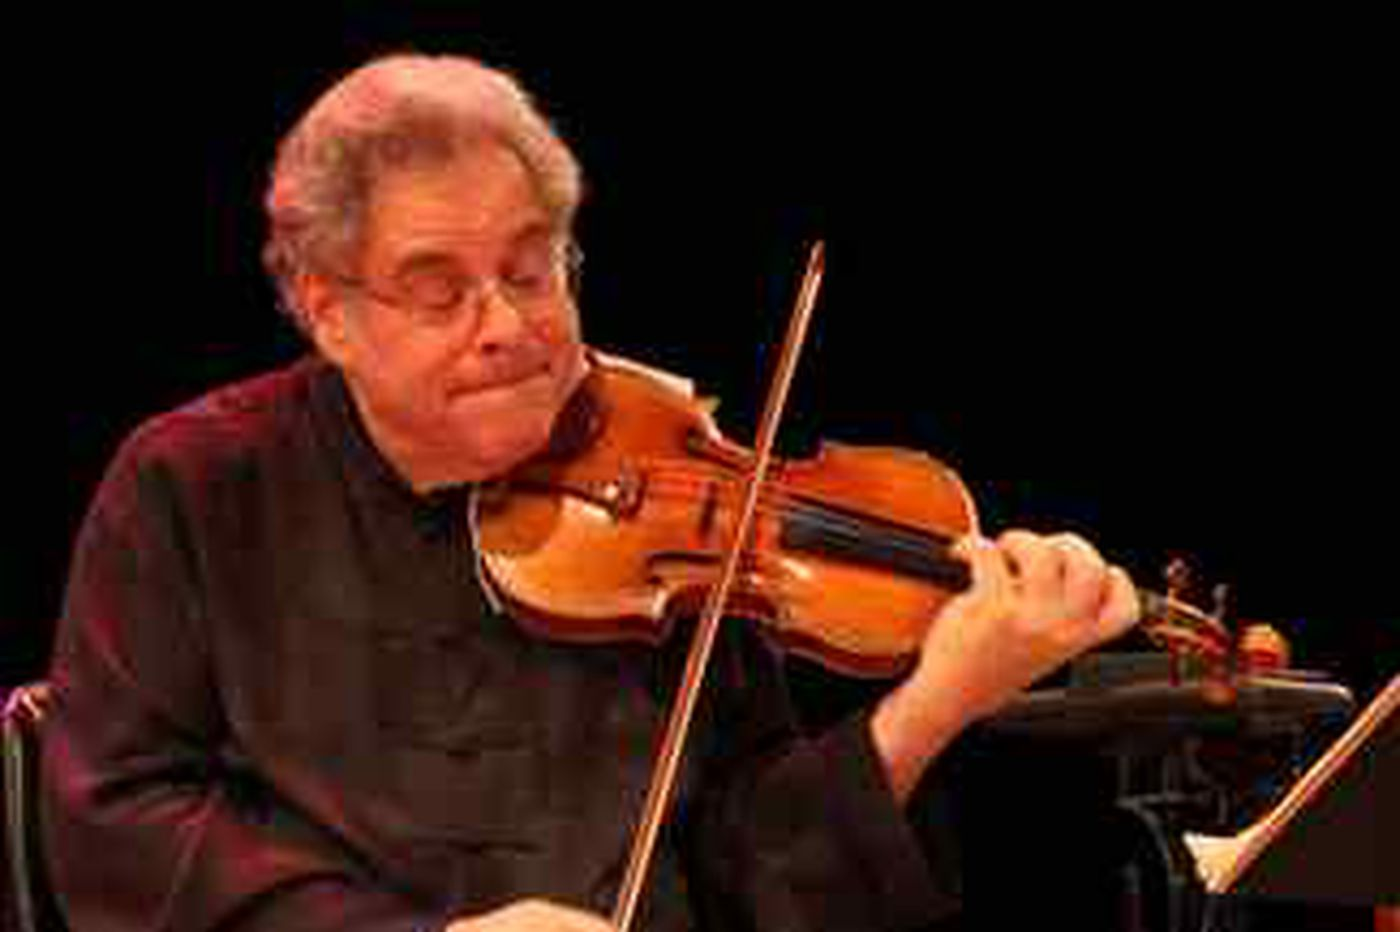 Itzhak Perlman to play John Williams scores in special Philadelphia Orchestra concert